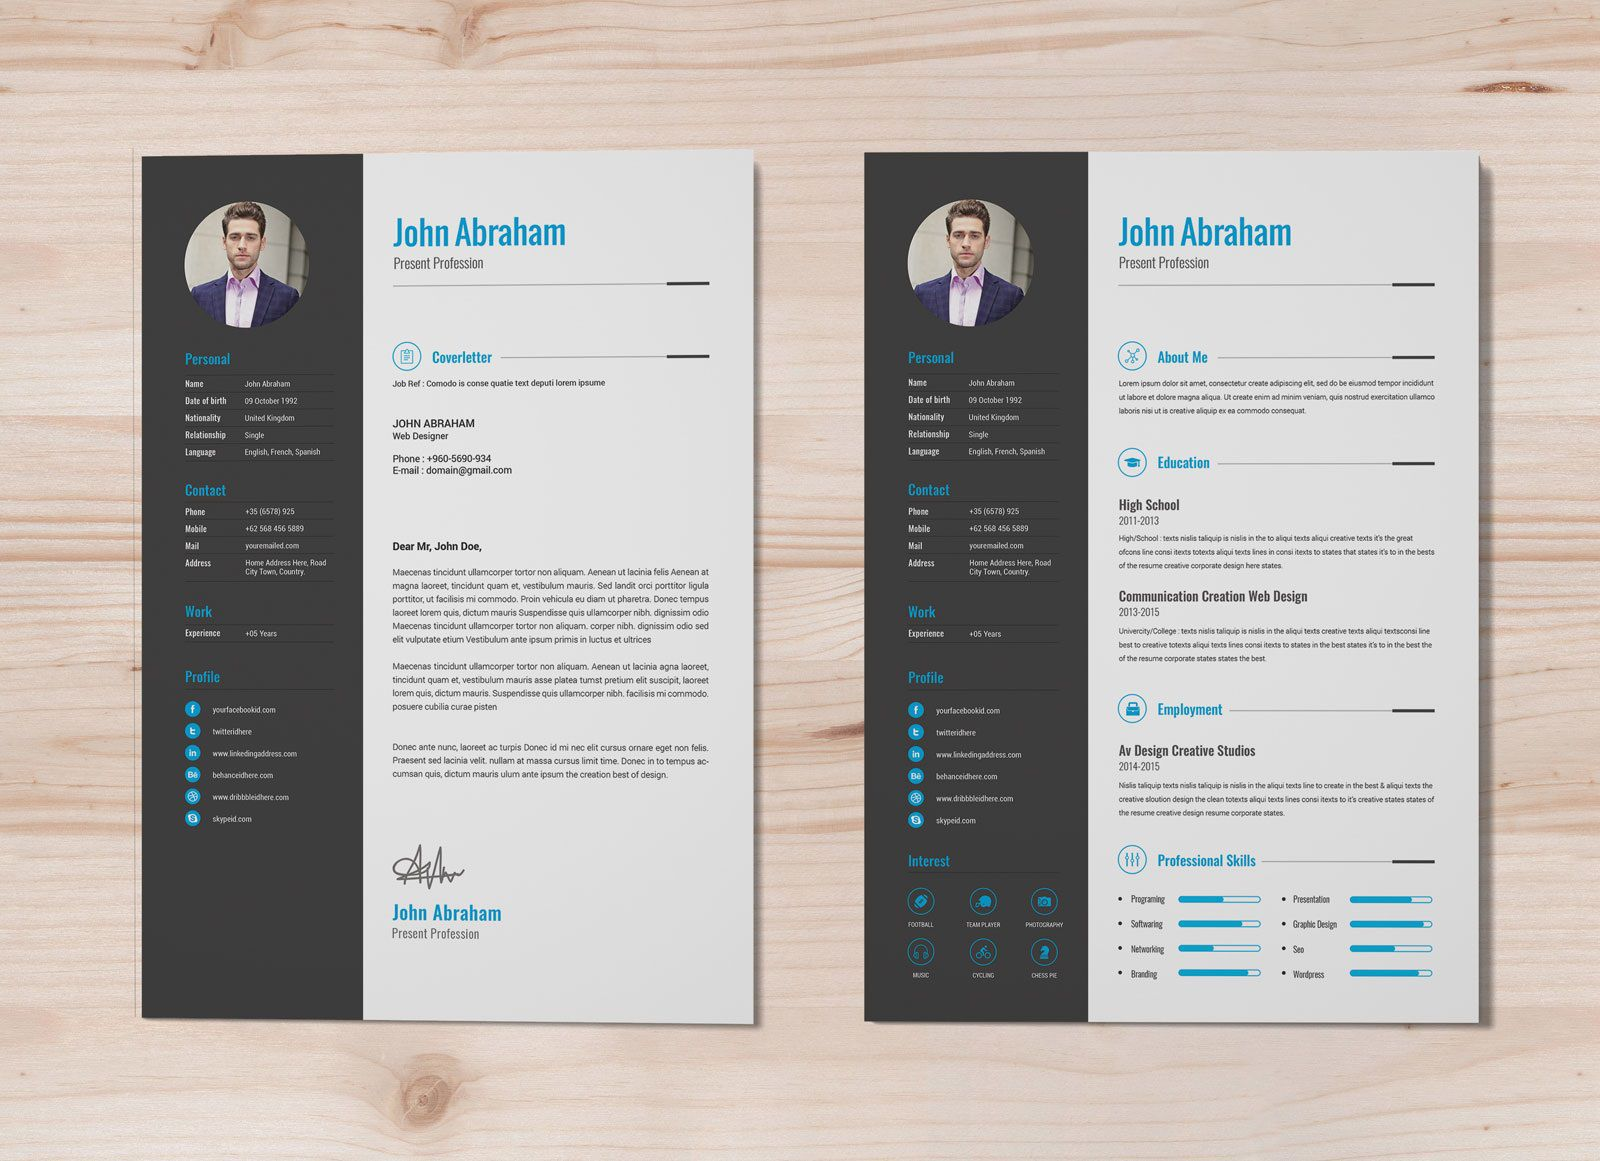 003 Astounding Professional Resume Template 2018 Free Download Inspiration Full